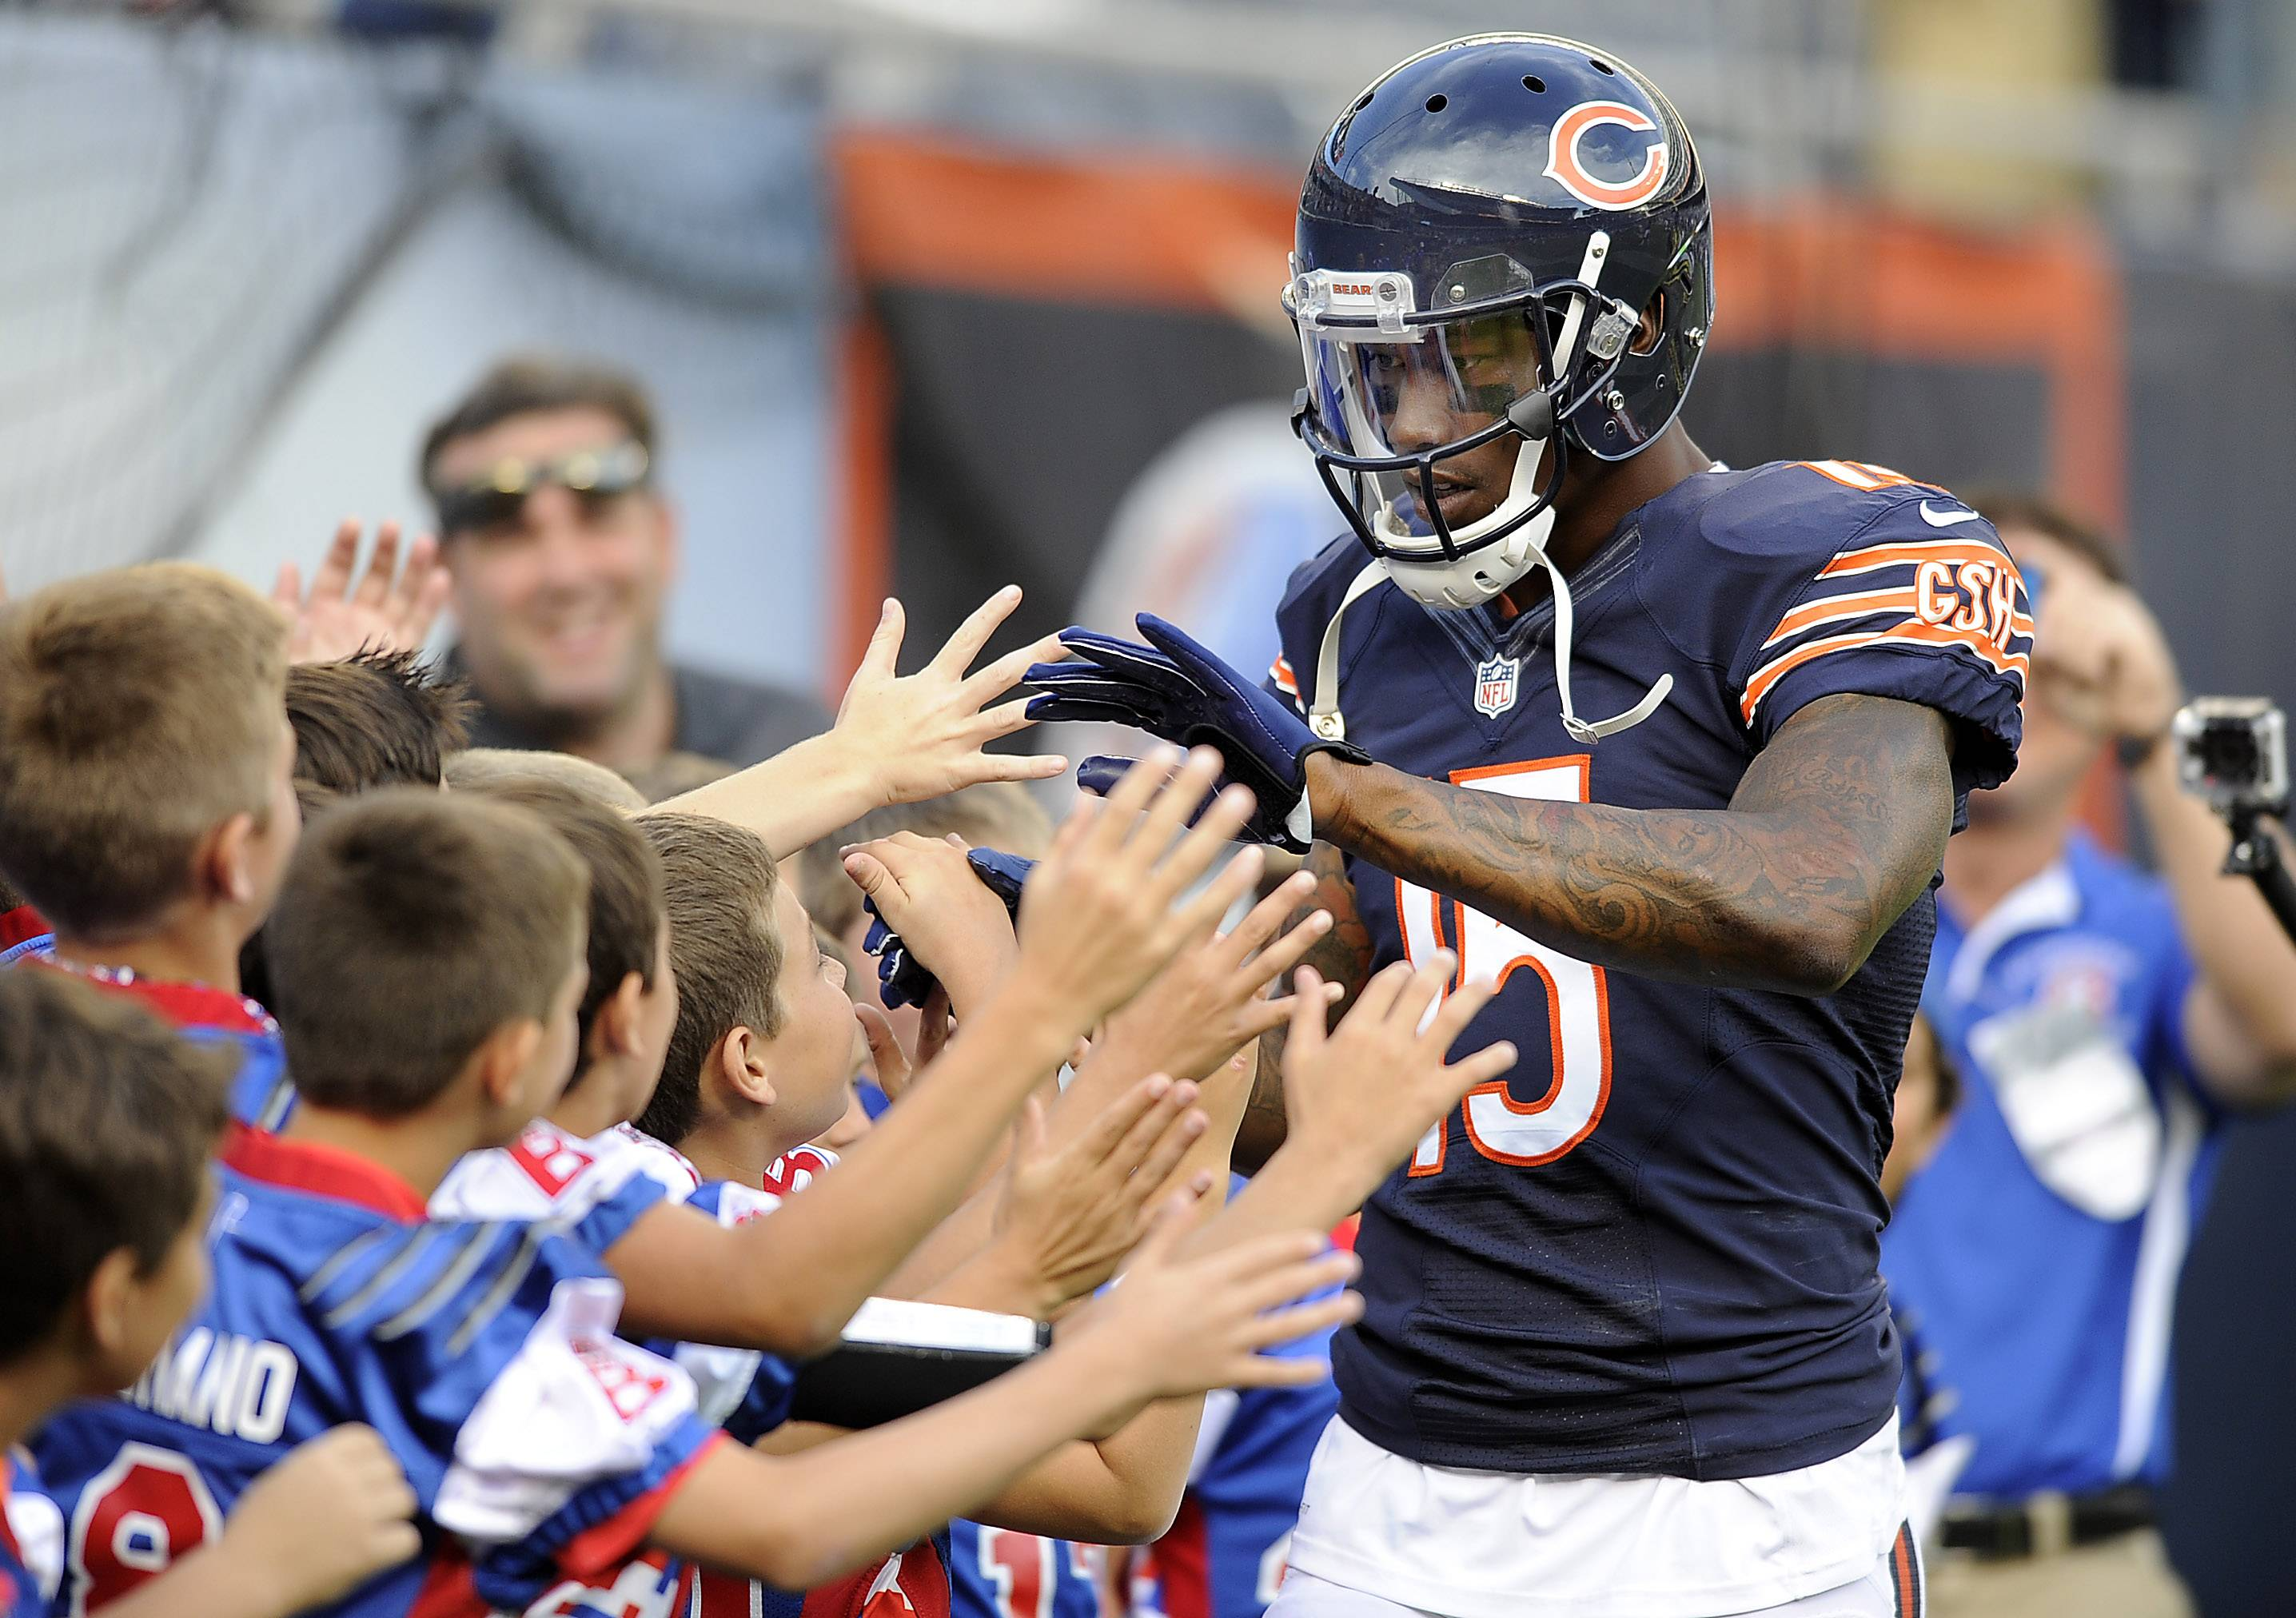 Chicago Bears' Brandon Marshall greets youngsters before the game.